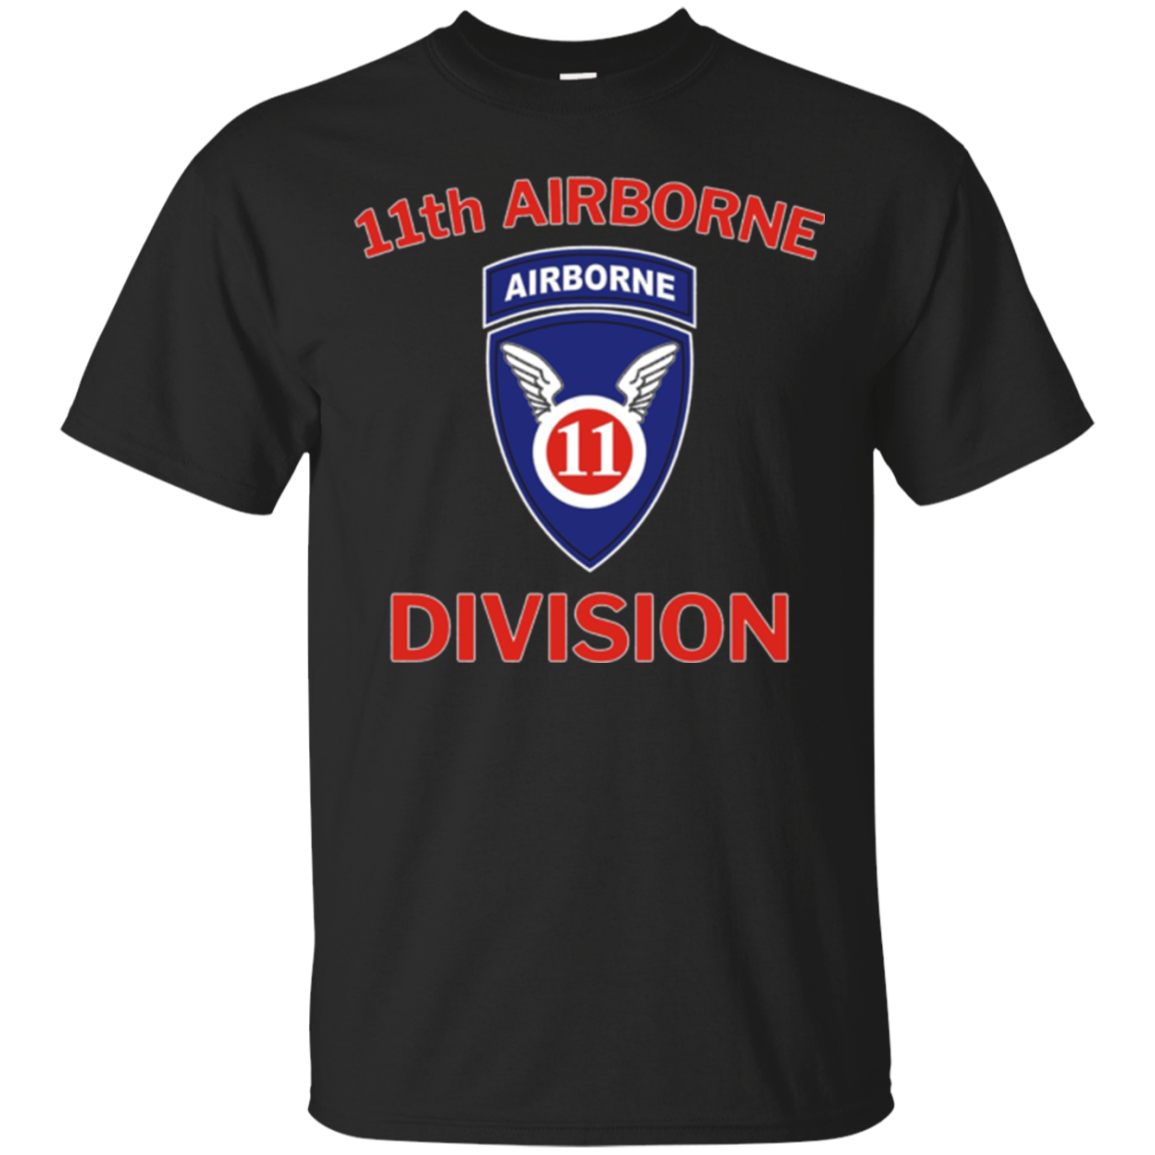 US Army 11th Airborne Division Vintage T-Shirt